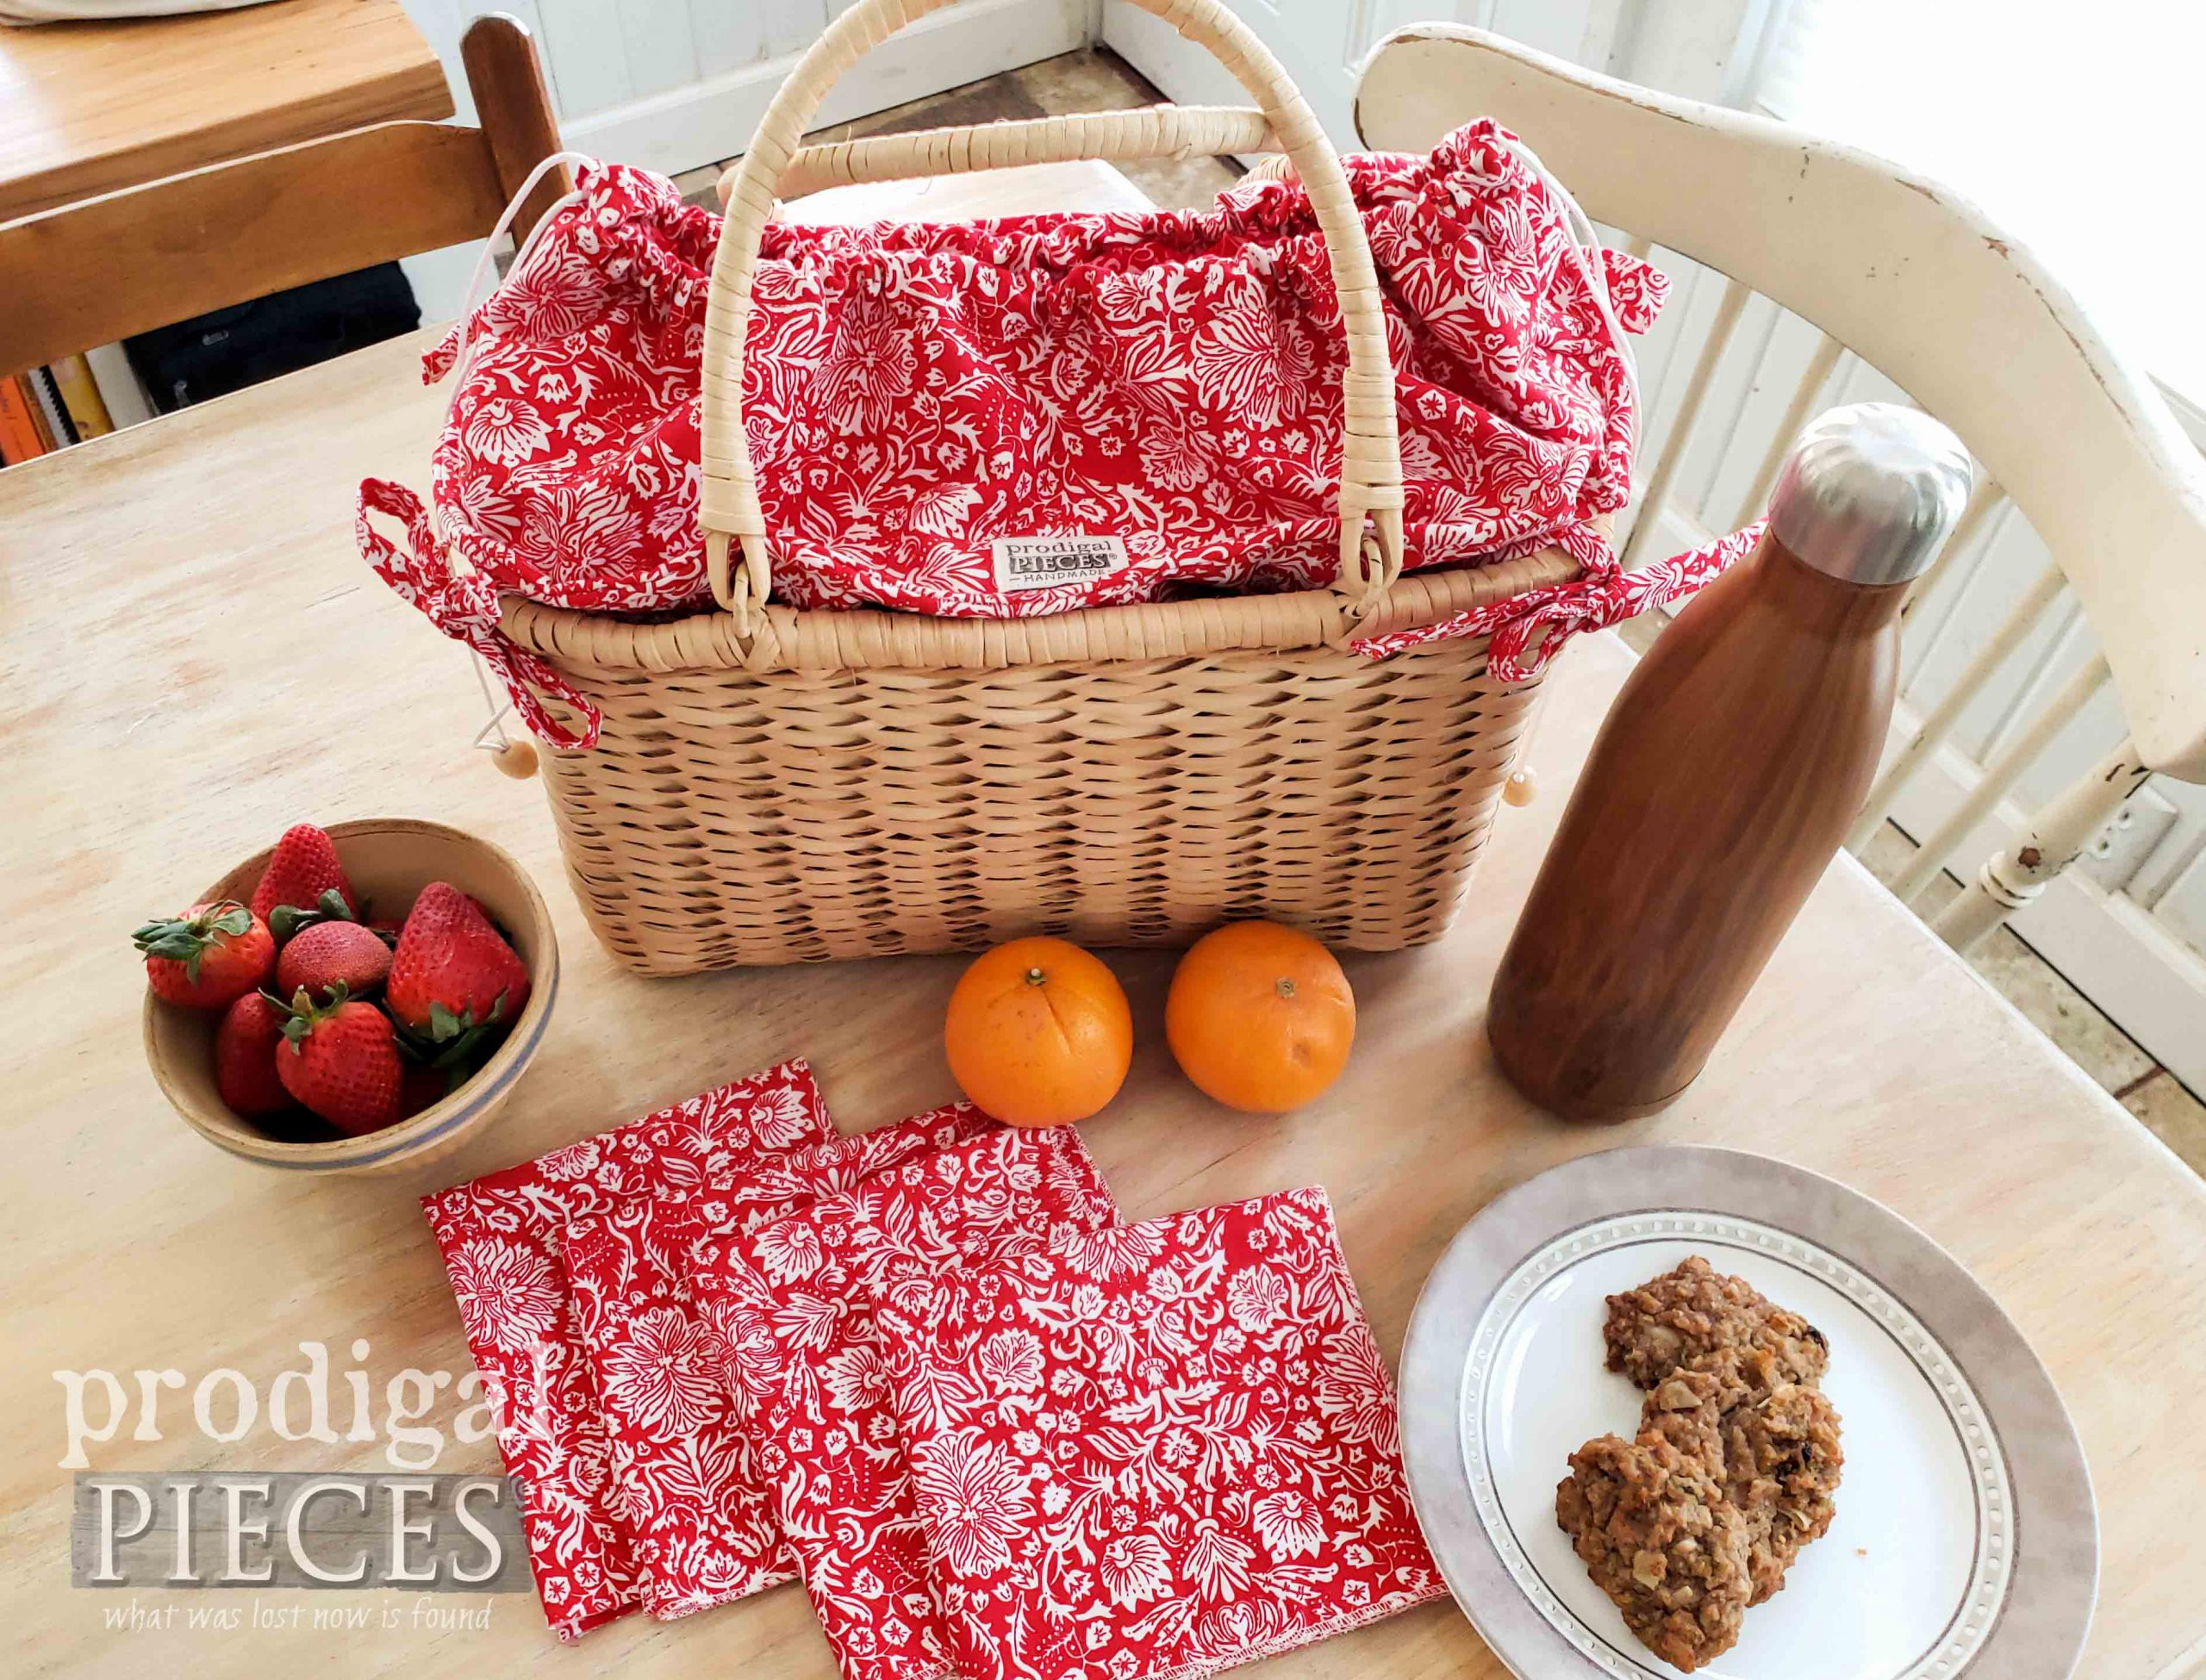 Larissa of Prodigal Pieces Takes a Thrifted Basket and Turns it into an Insulated Picnic Basket with Style | prodigalpieces.com #prodigalpieces #diy #sewing #handmade #home #summer